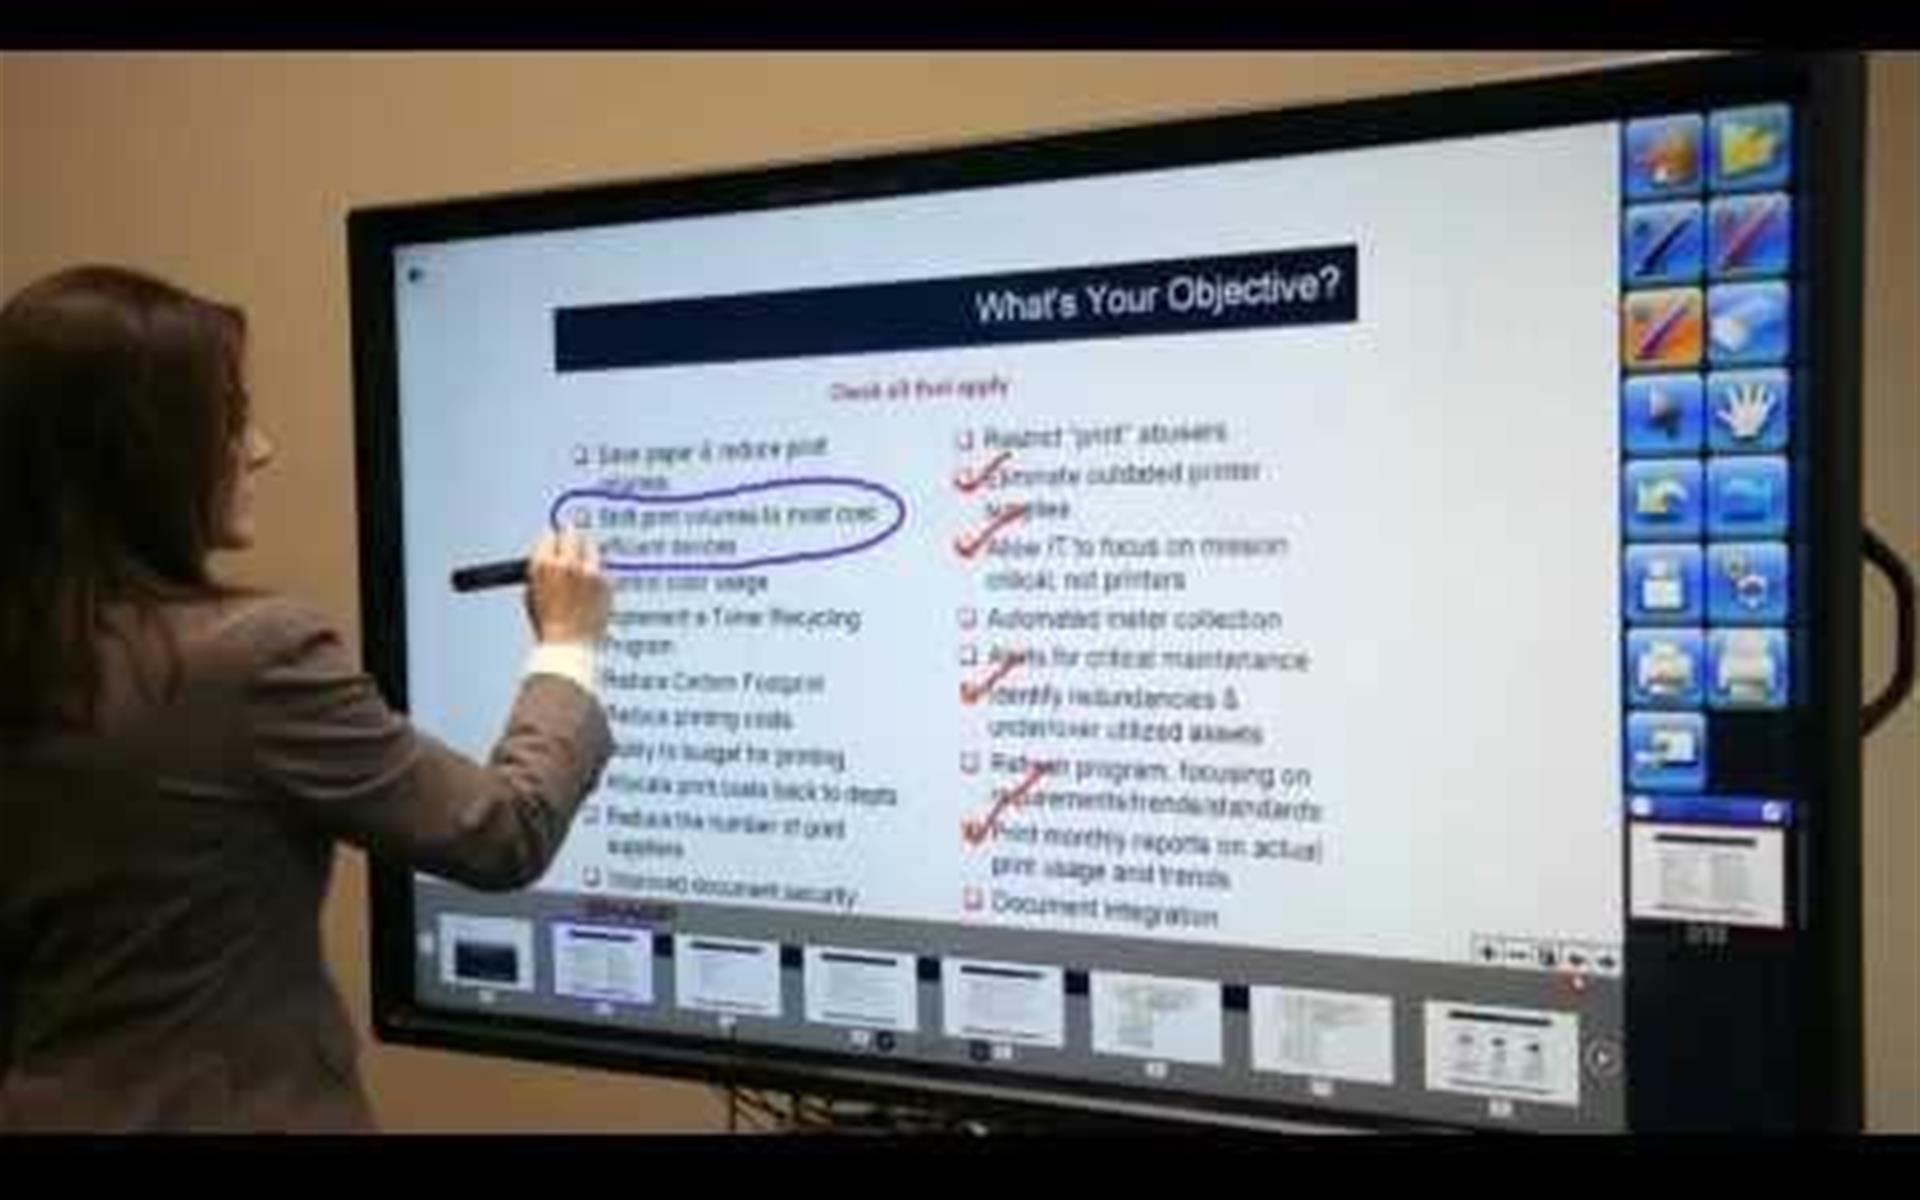 On Point Executive Center - Interactive 70inch Smart Board